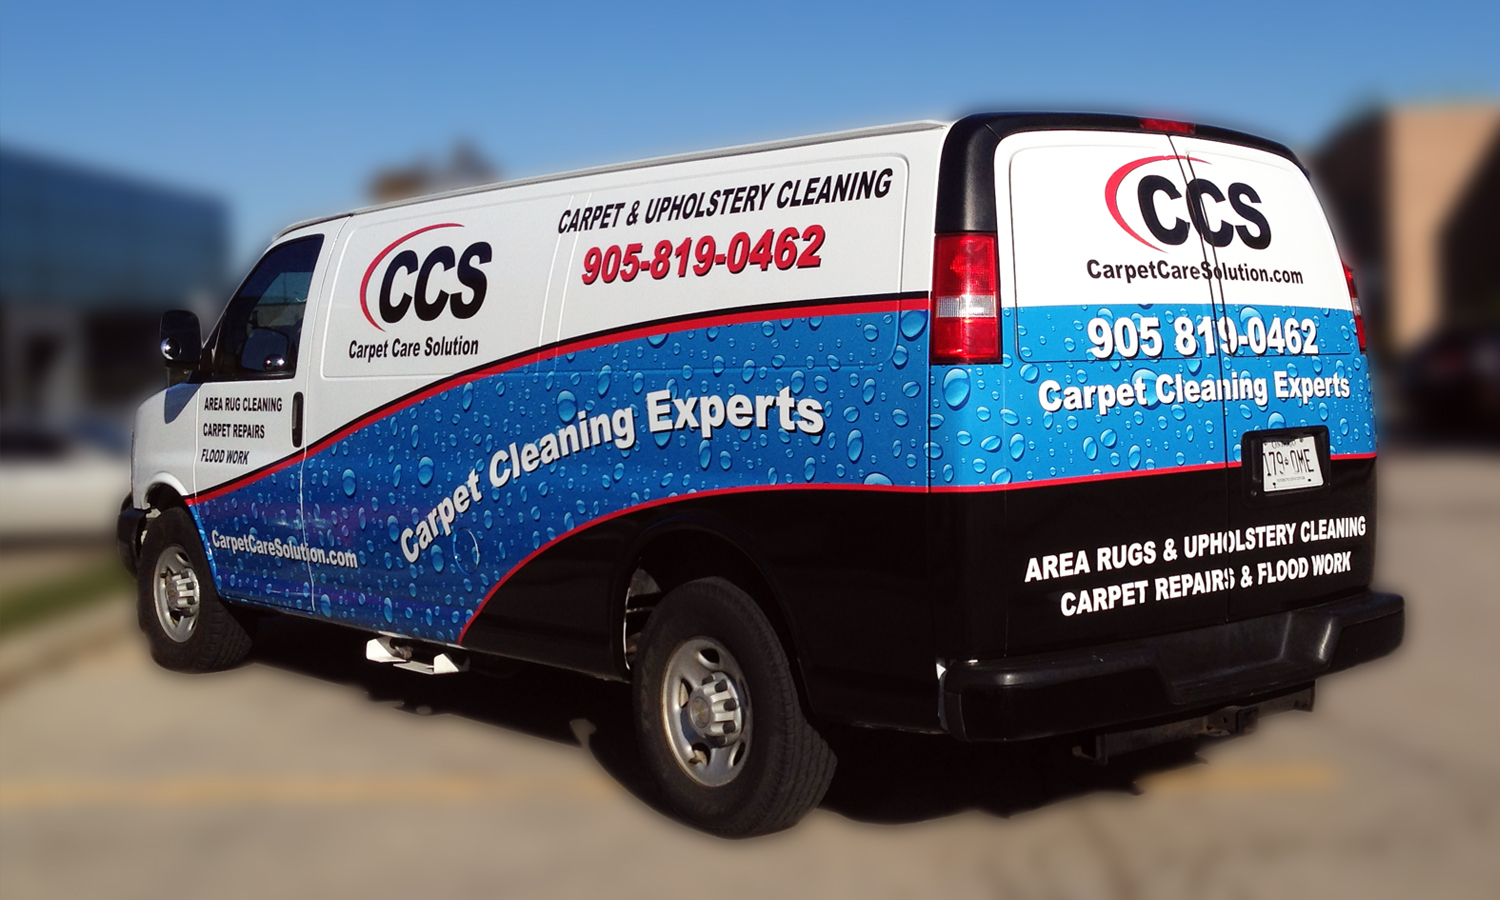 Vehicle Wrap Cost >> Fleet Graphics And Commercial Vehicle Wraps | Mad Graphics